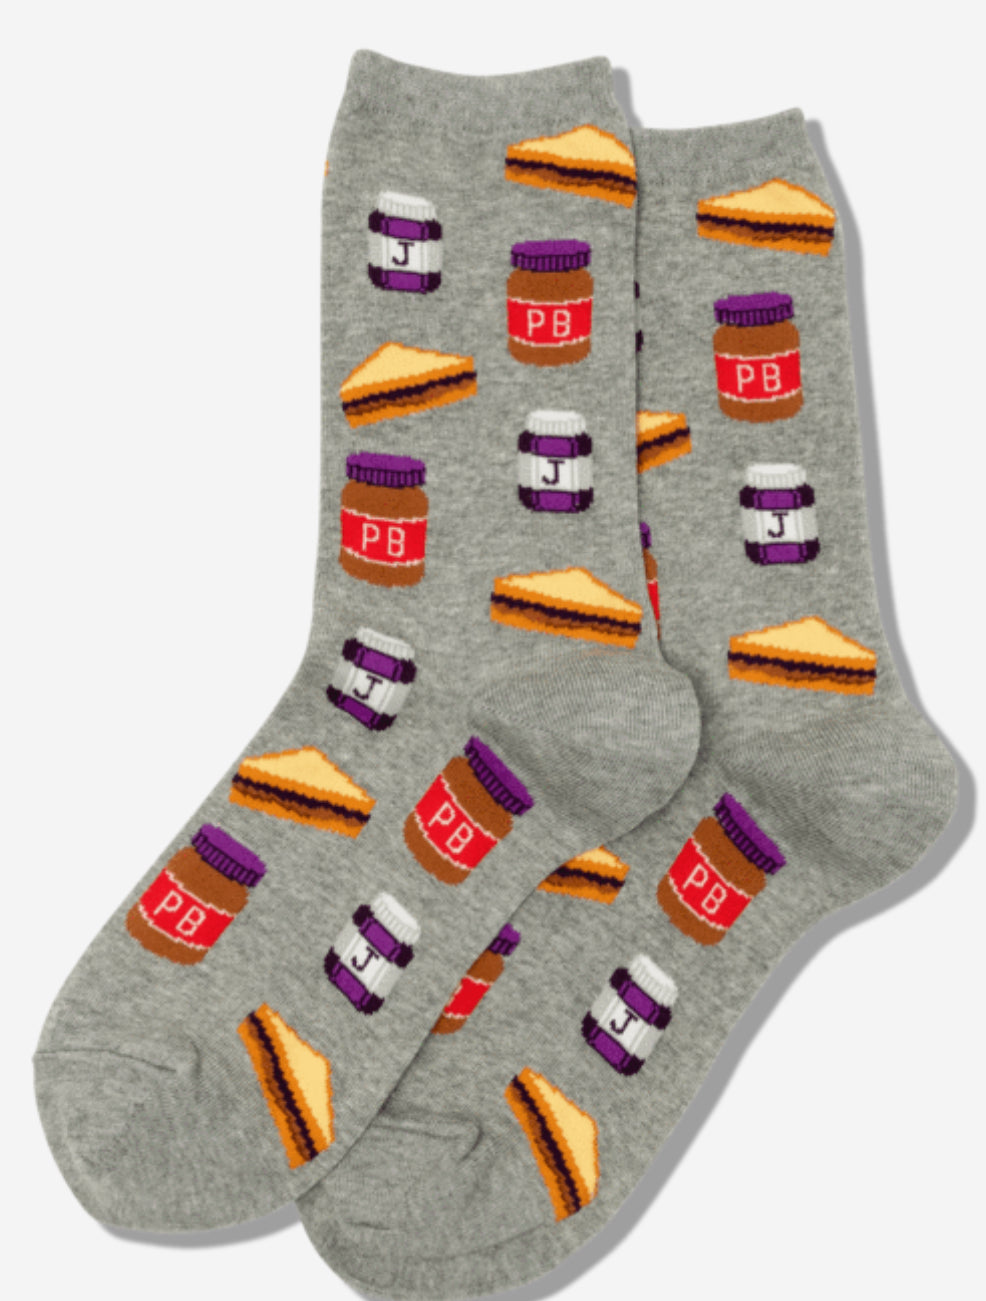 HotSox Women's PB and J Grey Socks - Novelty Socks, Mens, Womens, Kids